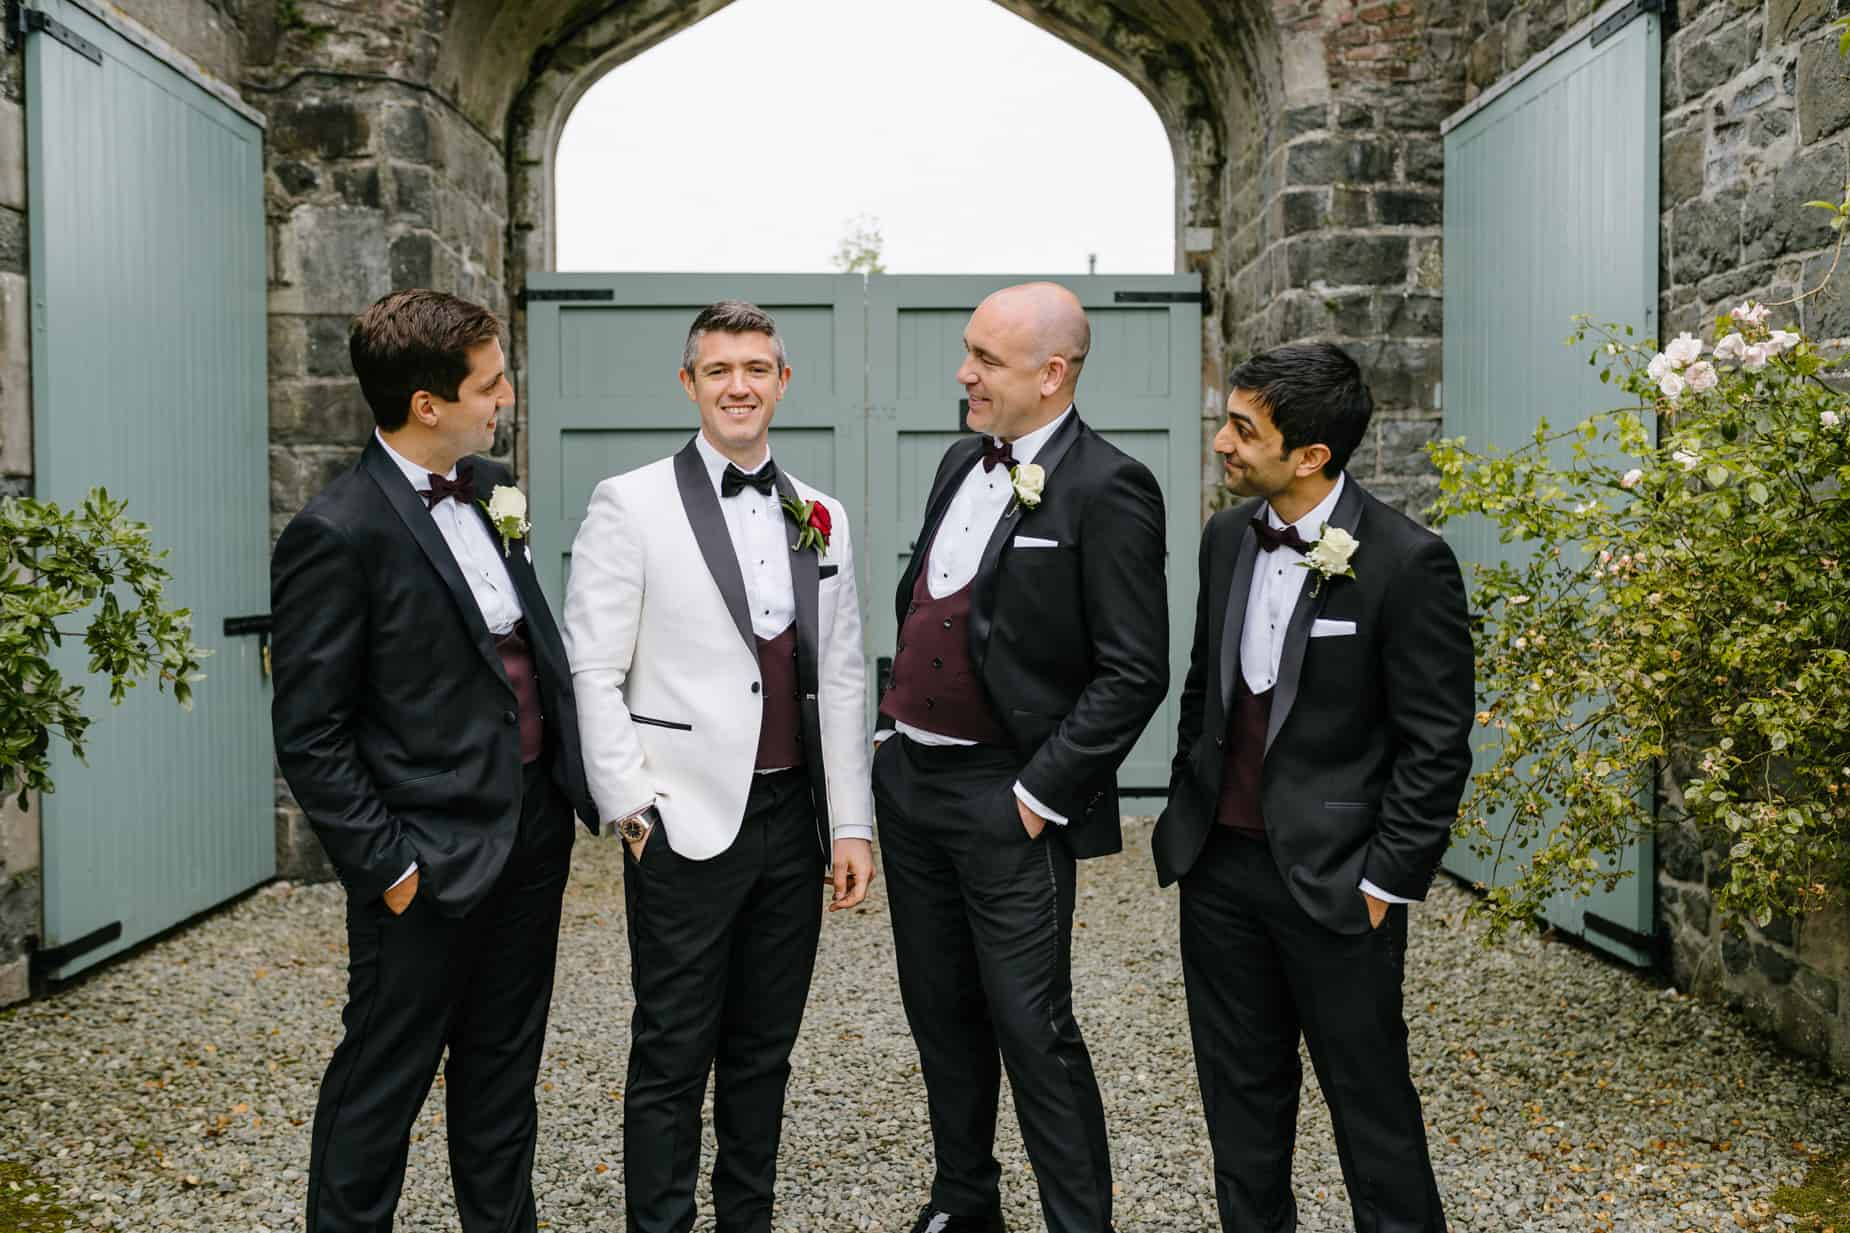 groom in tuxedo with white jacket and 3 grooms men in black tuxedos